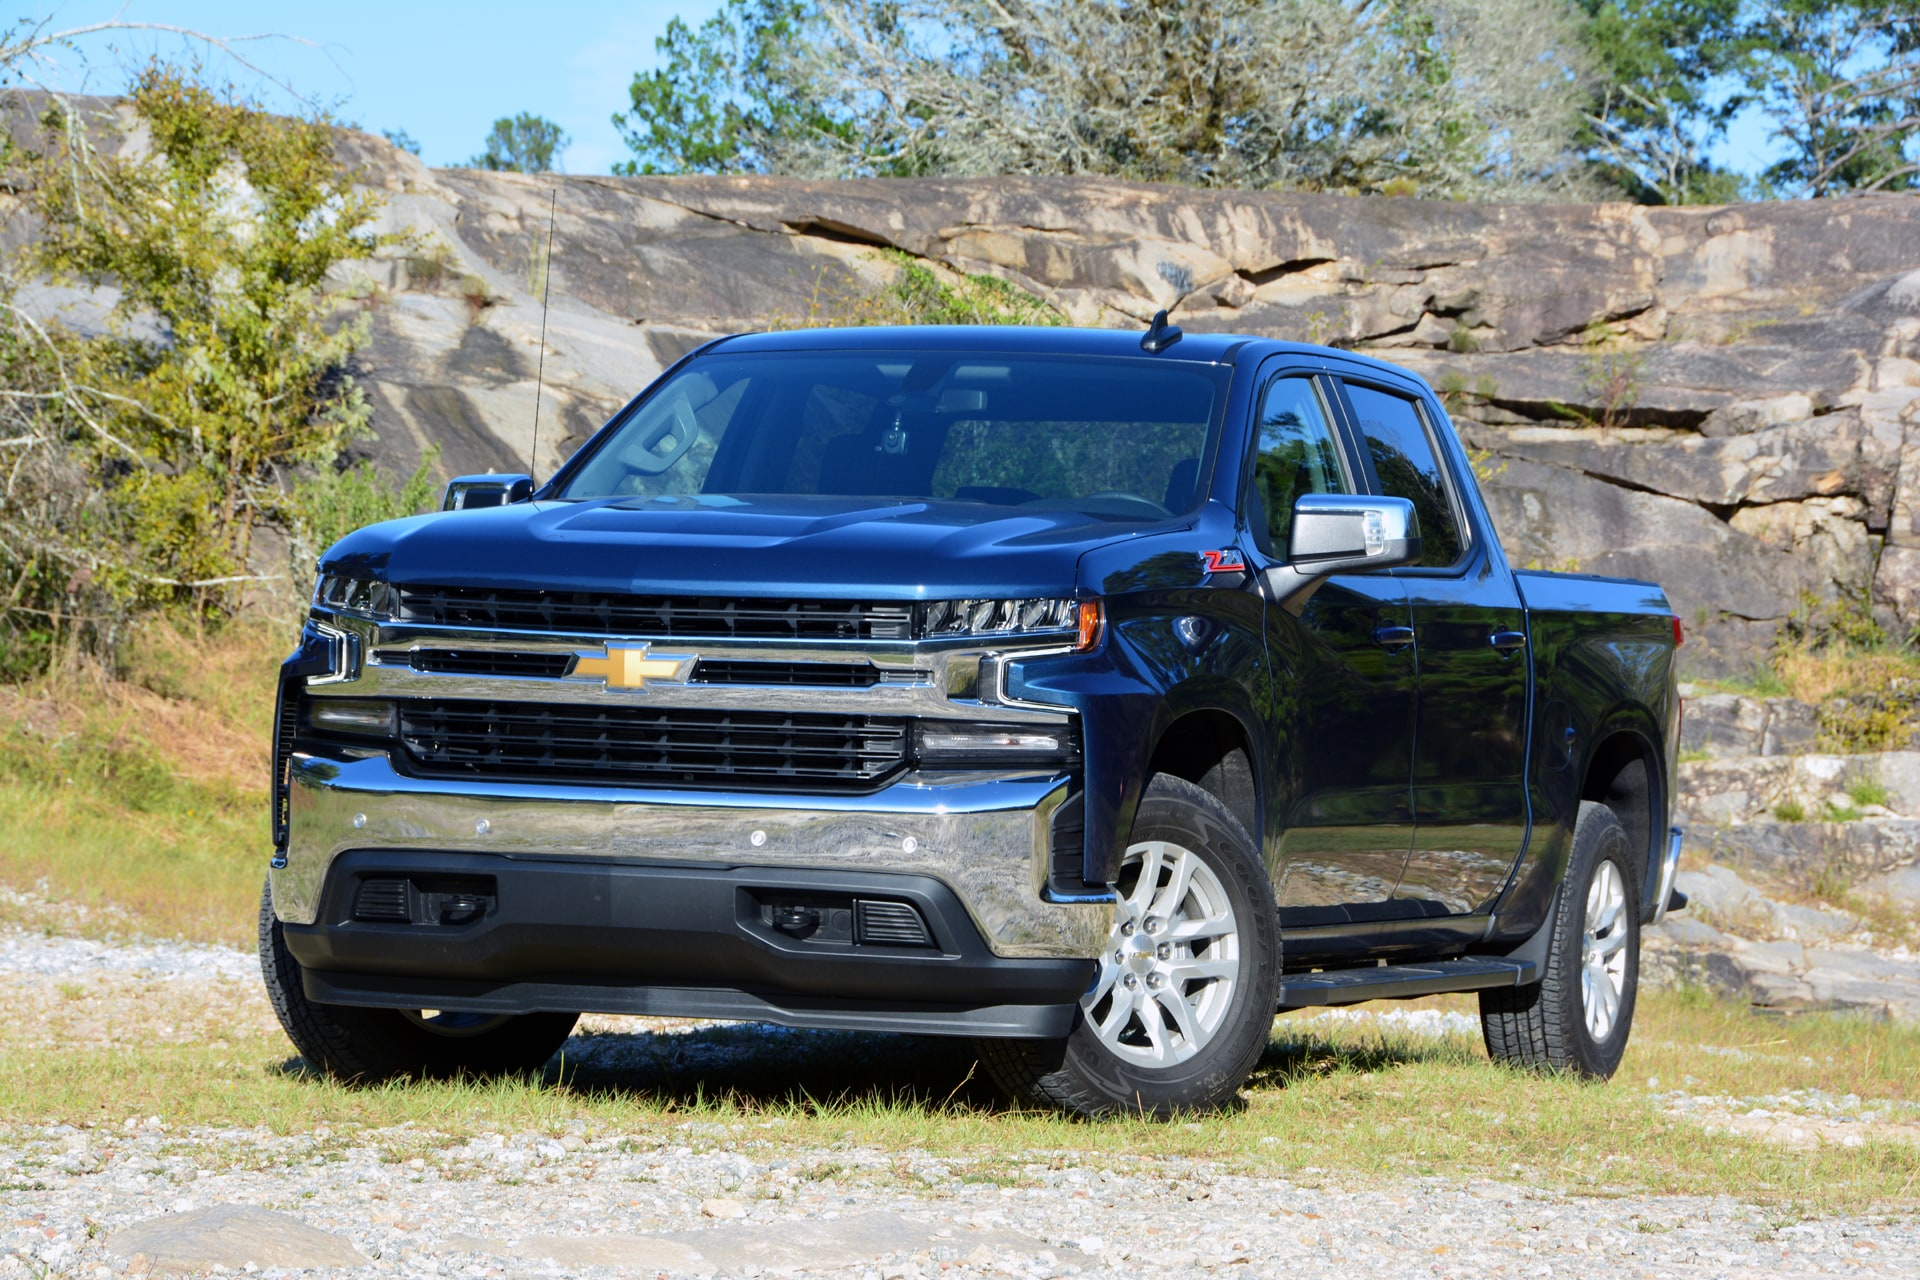 Image of 2019 Chevrolet Silverado 1500 Z71 4x4 vehicle